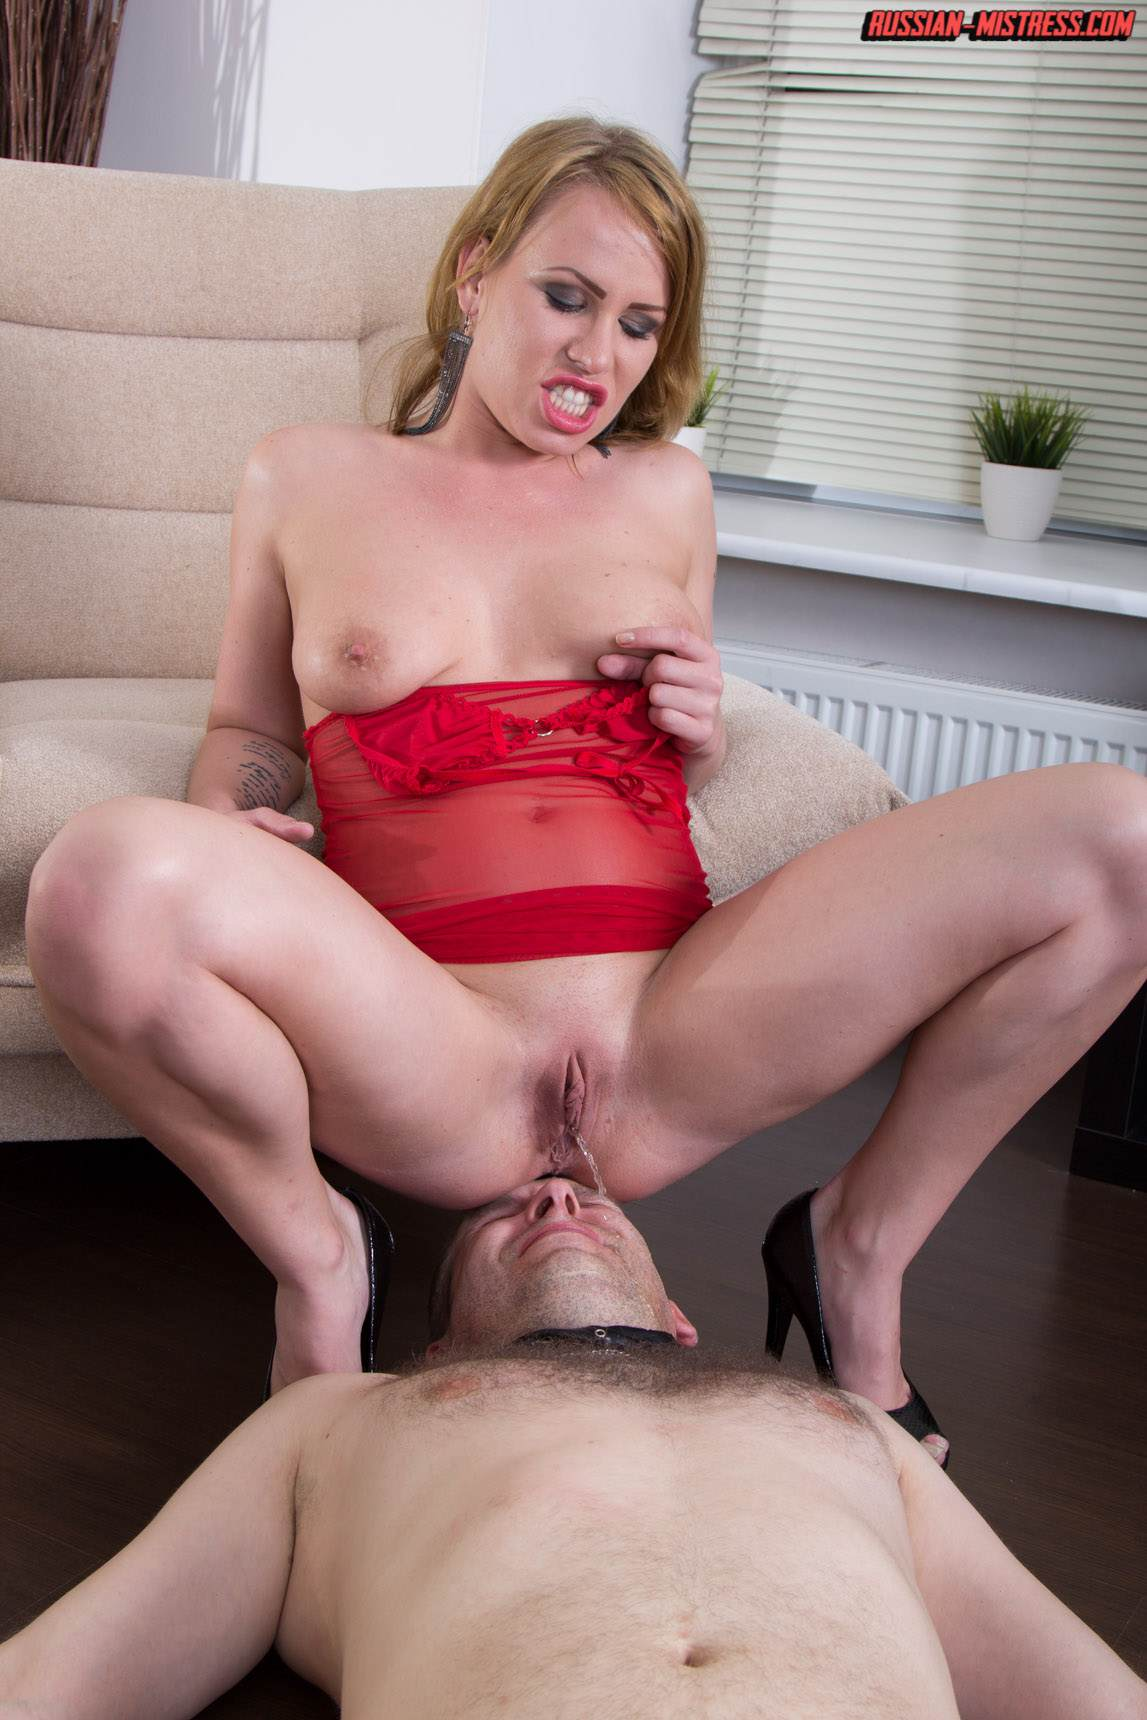 Picture #13 of Cruel bitch is loving wearing red lingerie and heels when pushing slave's face in between her butt cheeks and then peeing then over him